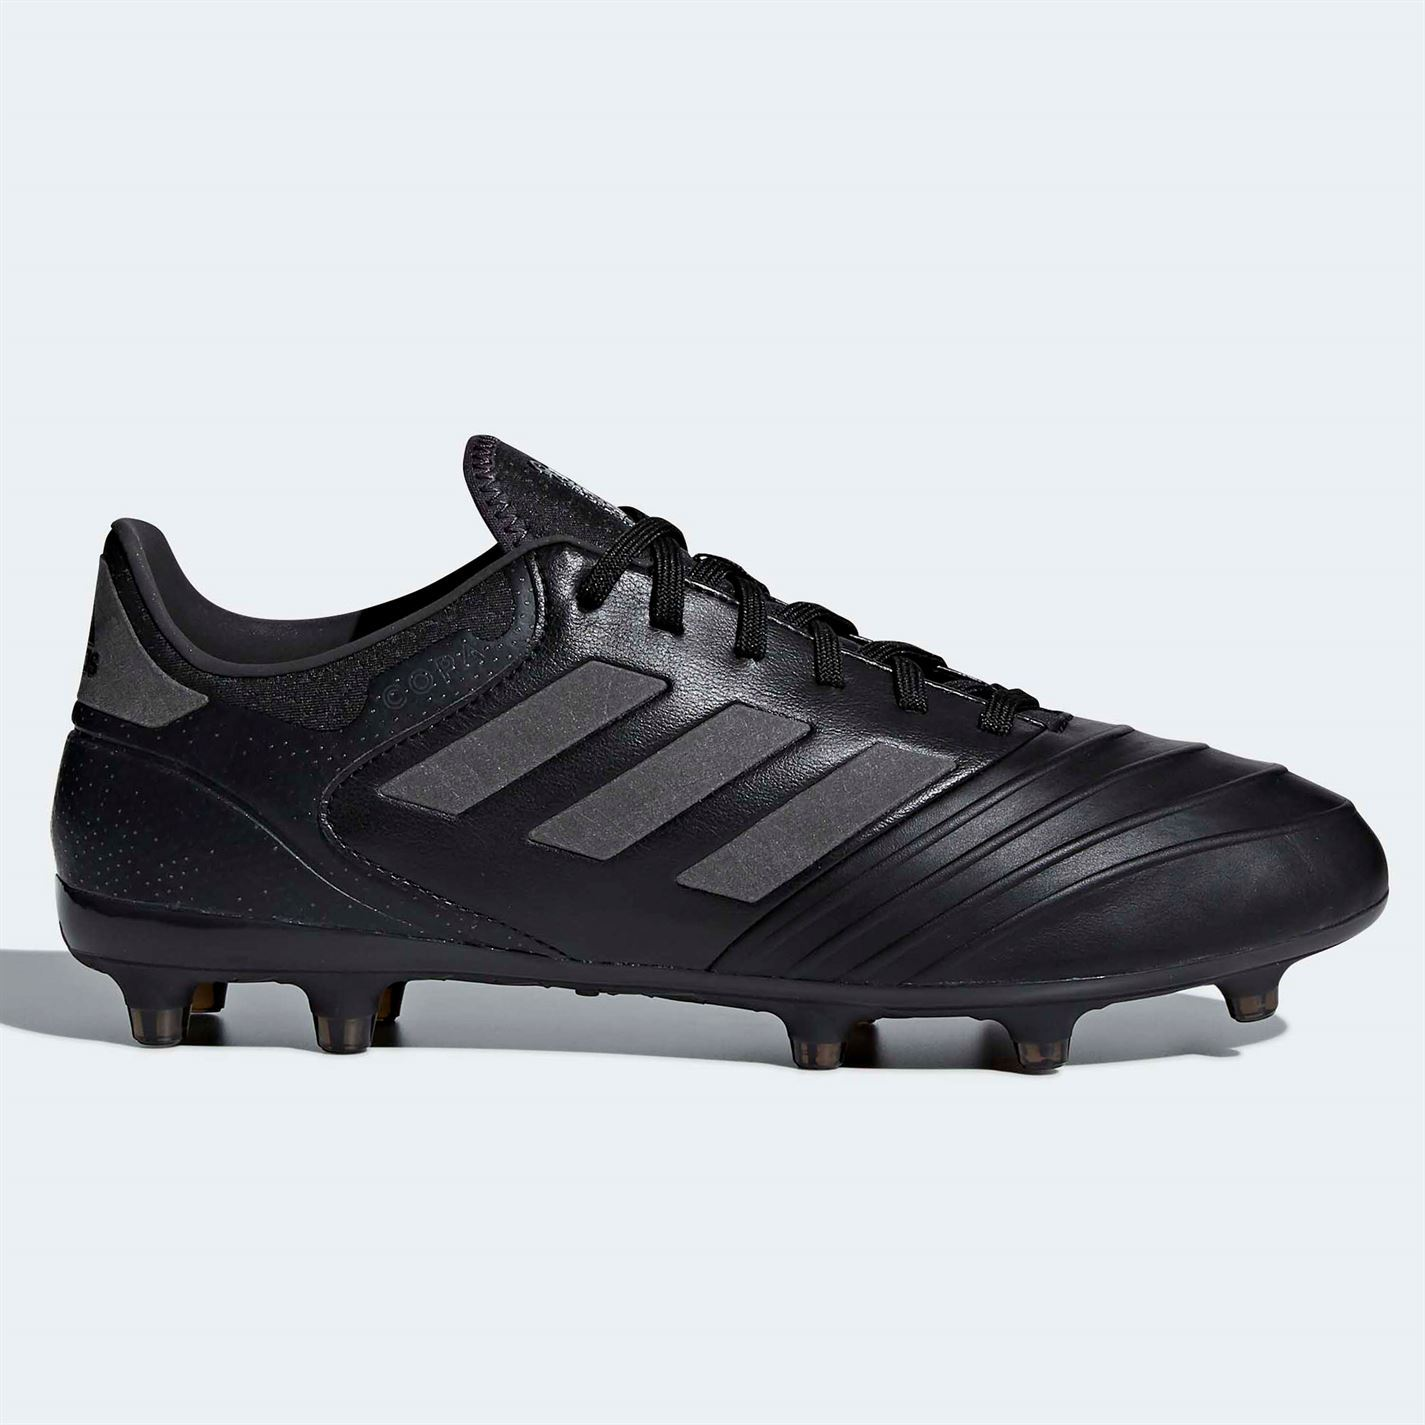 adidas copa 18 2 fg firm ground football boots mens black soccer rh ebay com